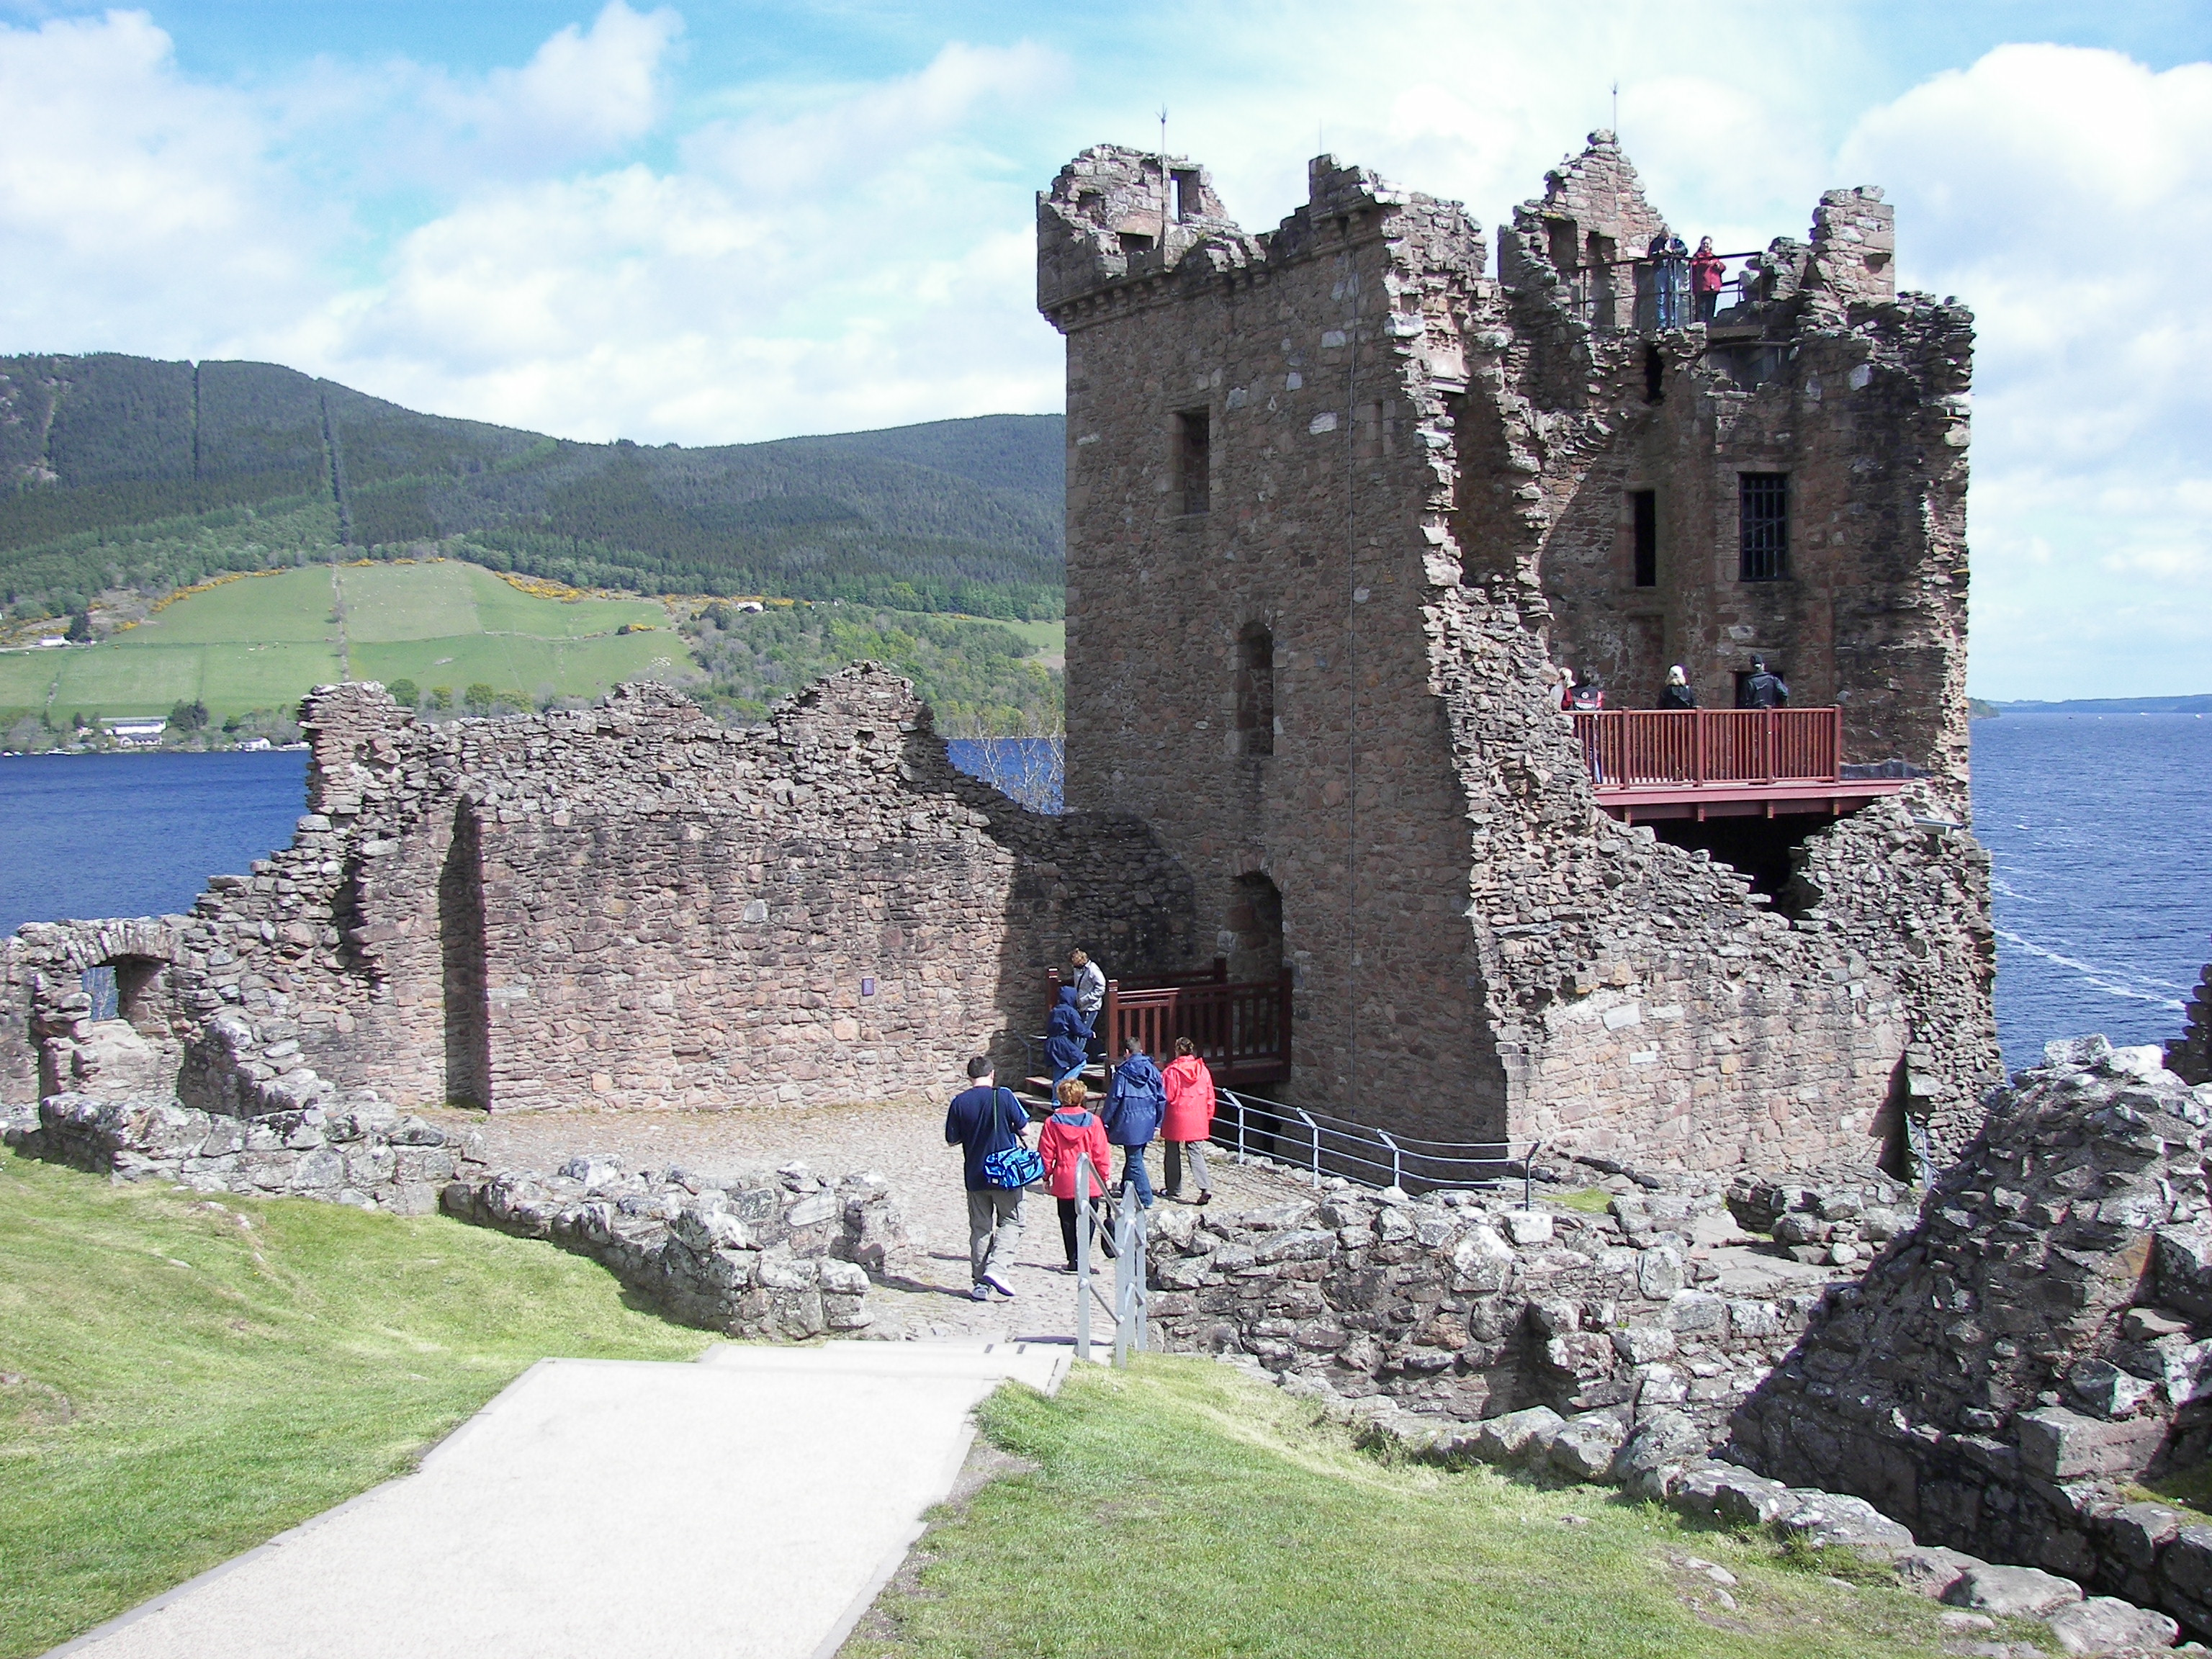 Tower House of Urquhart Castle on Loch Ness.